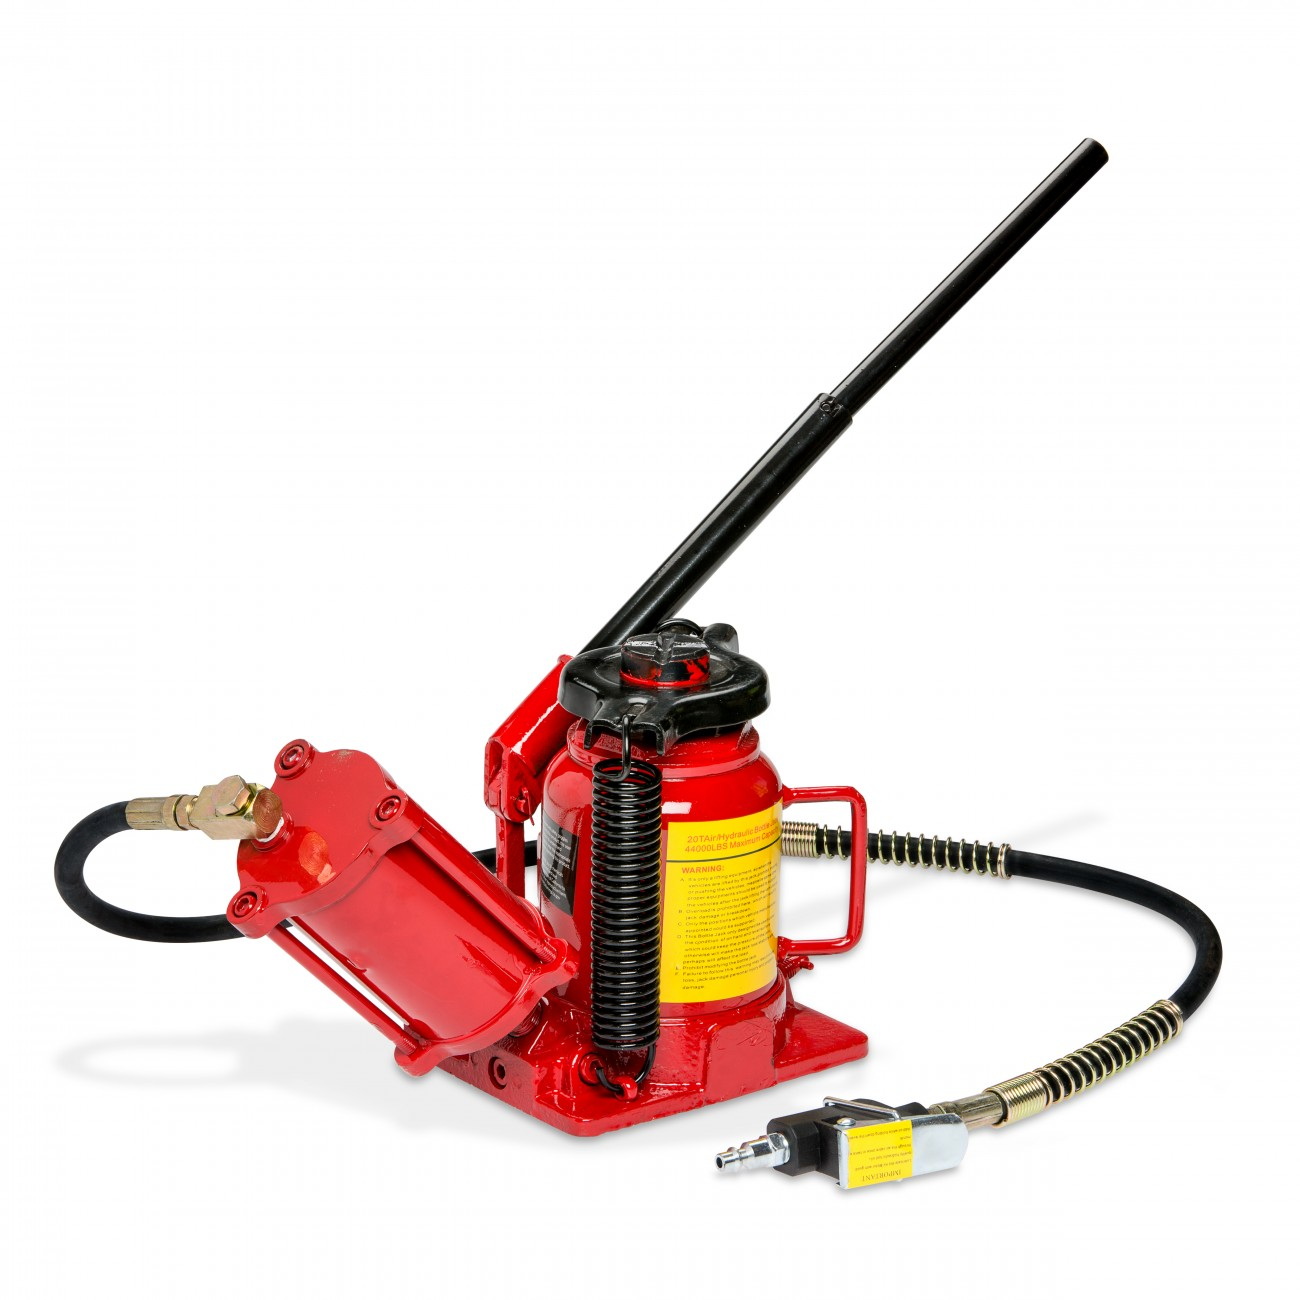 Details about 20 Ton Bottle Jack Lift Air Manual Pneumatic Hydraulic Low  Profile RV Truck